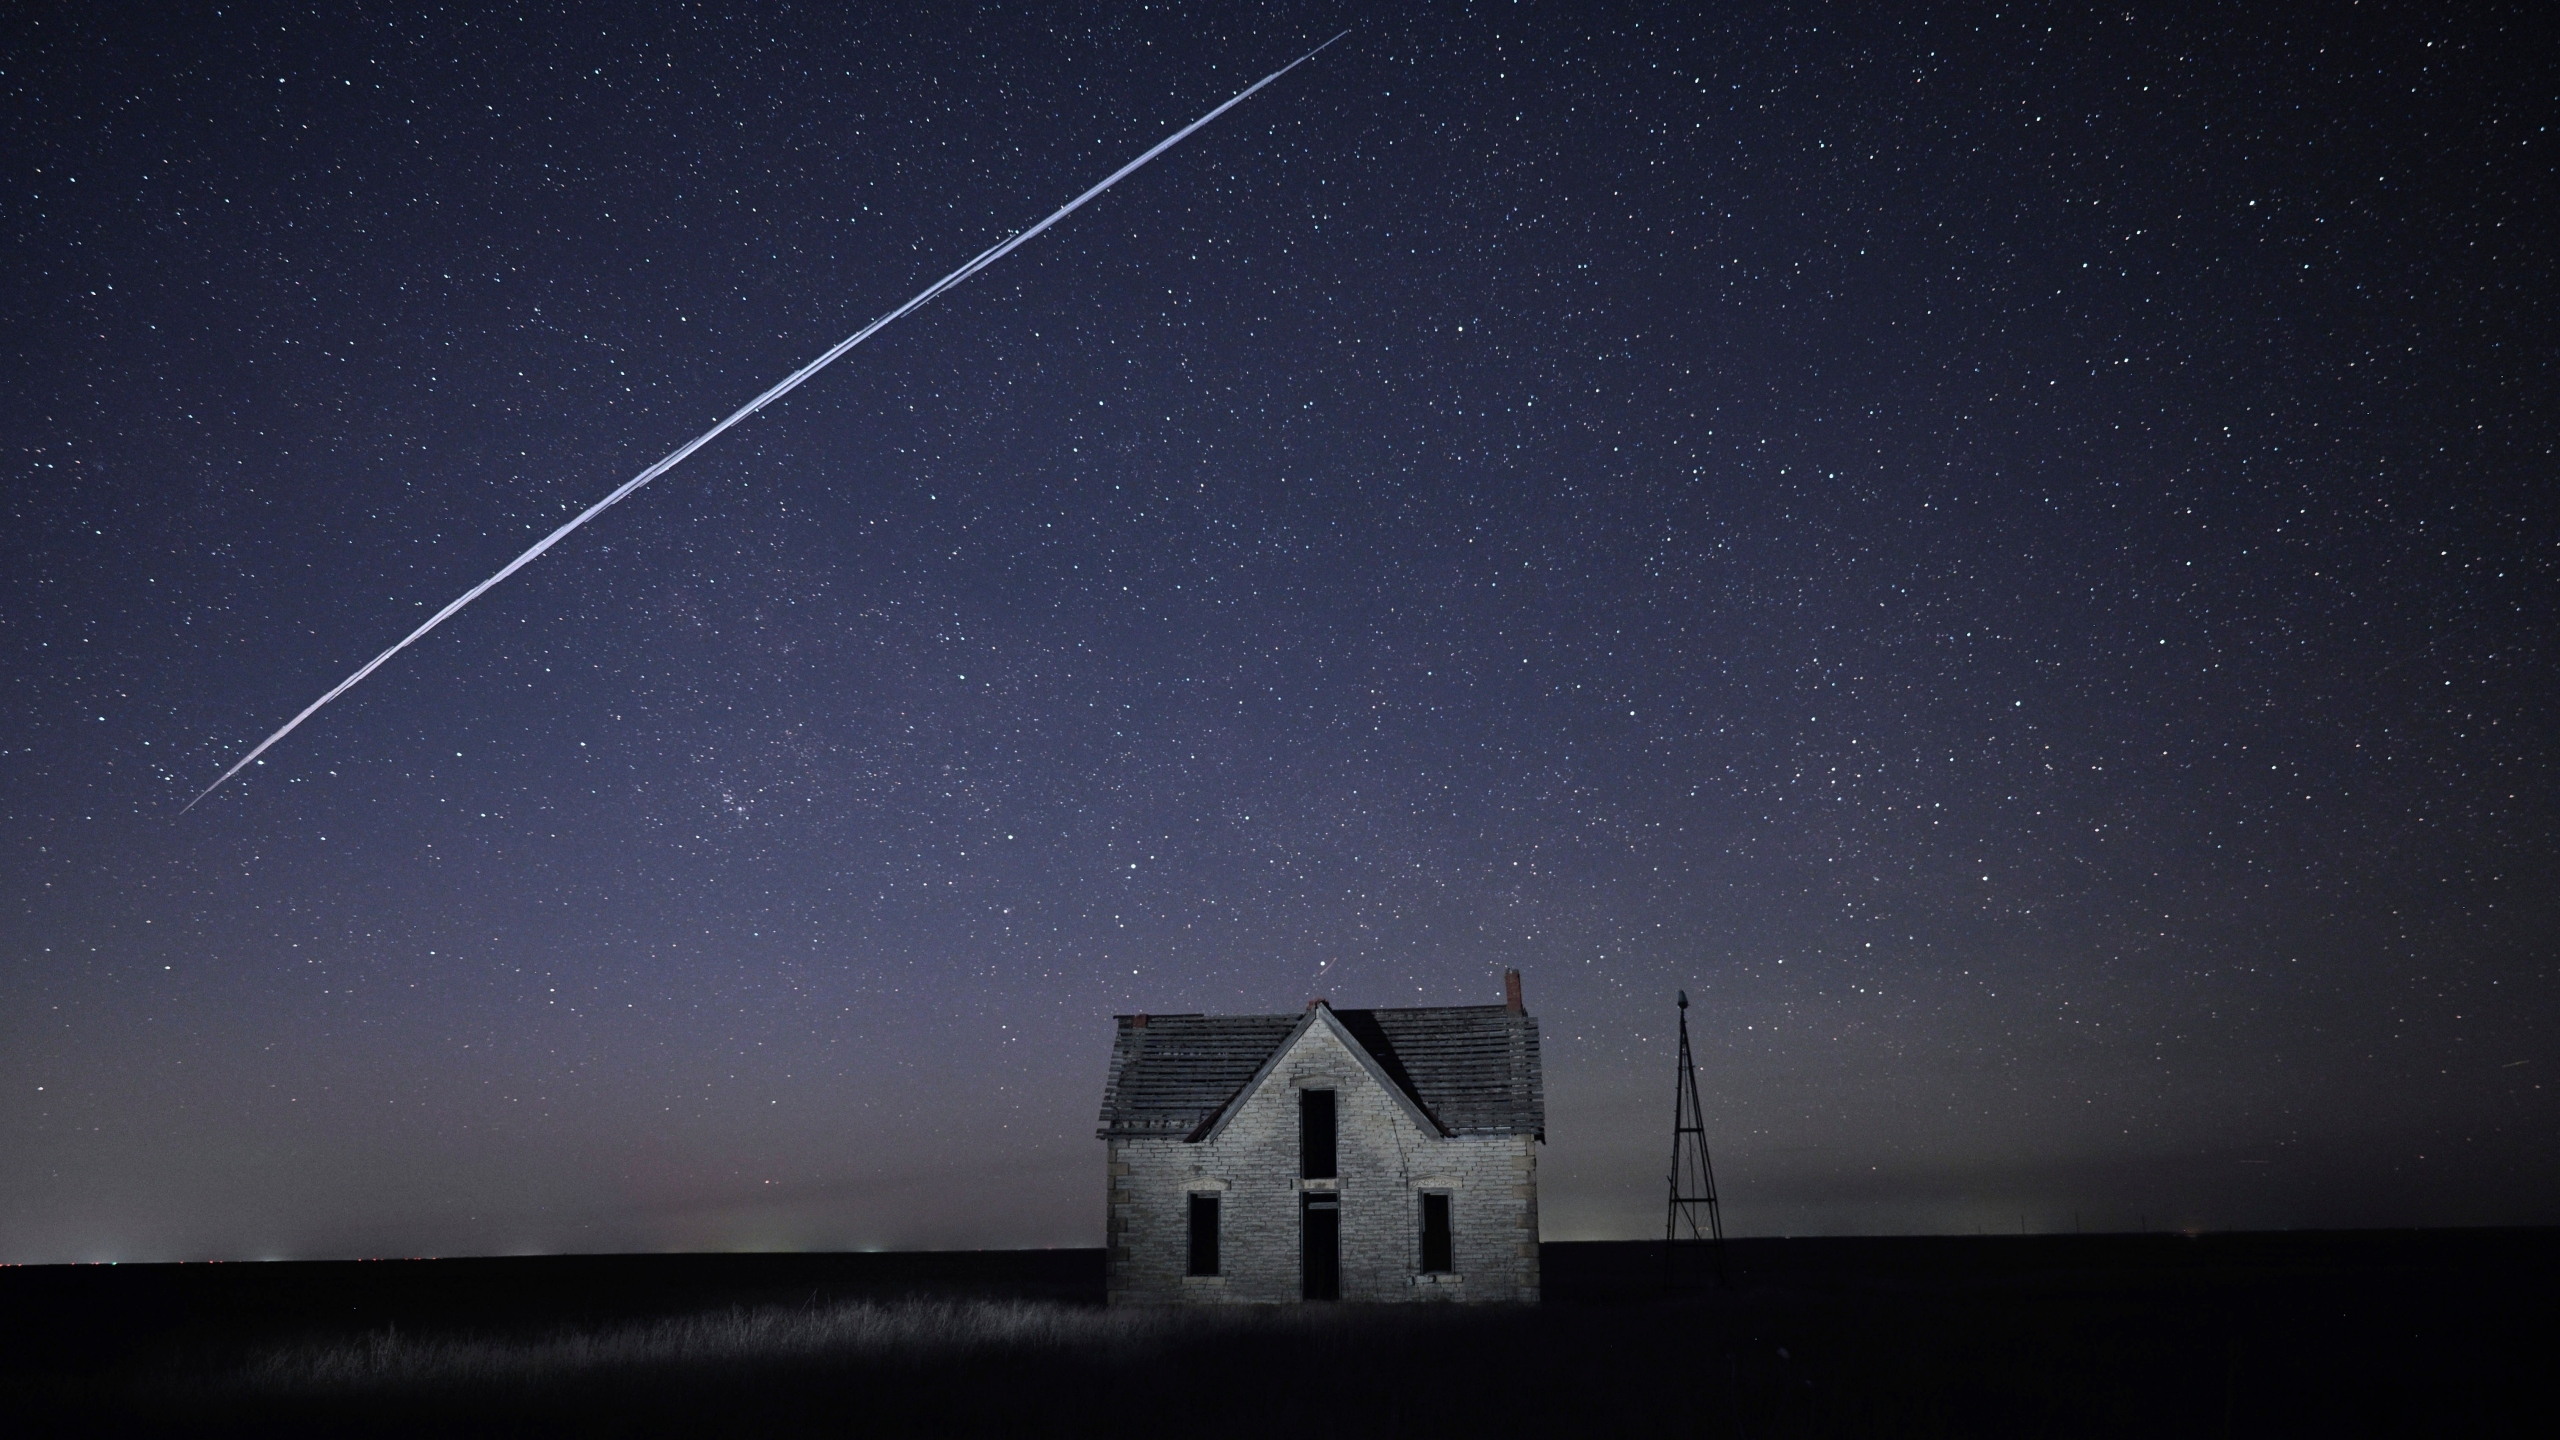 In this photo taken May 6, 2021, with a long exposure, a string of SpaceX StarLink satellites passes over an old stone house near Florence, Kan. The train of lights was actually a series of relatively low-flying satellites launched by Elon Musk's SpaceX as part of its Starlink internet service earlier this week. (AP Photo/Reed Hoffmann, File)